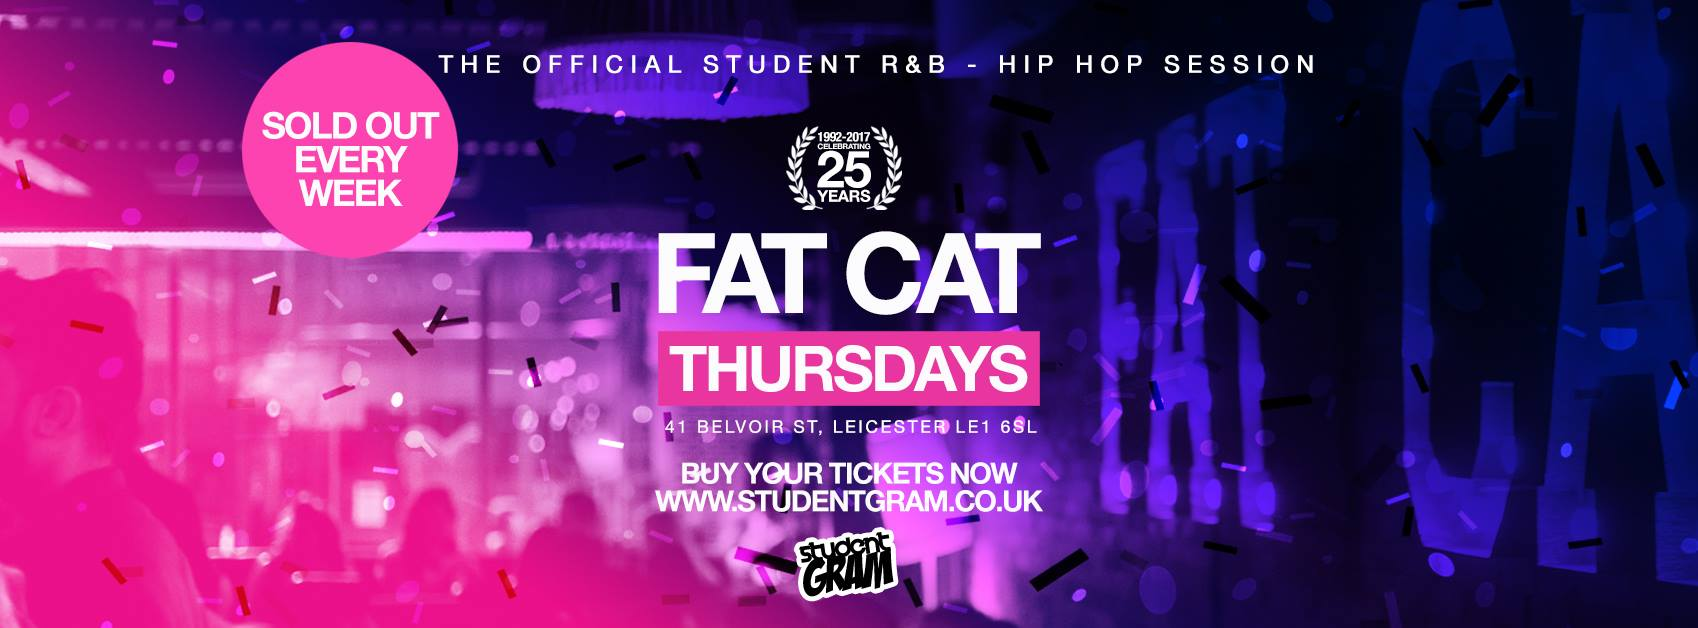 Studentgram leicester tickets and events fatsoma malvernweather Choice Image